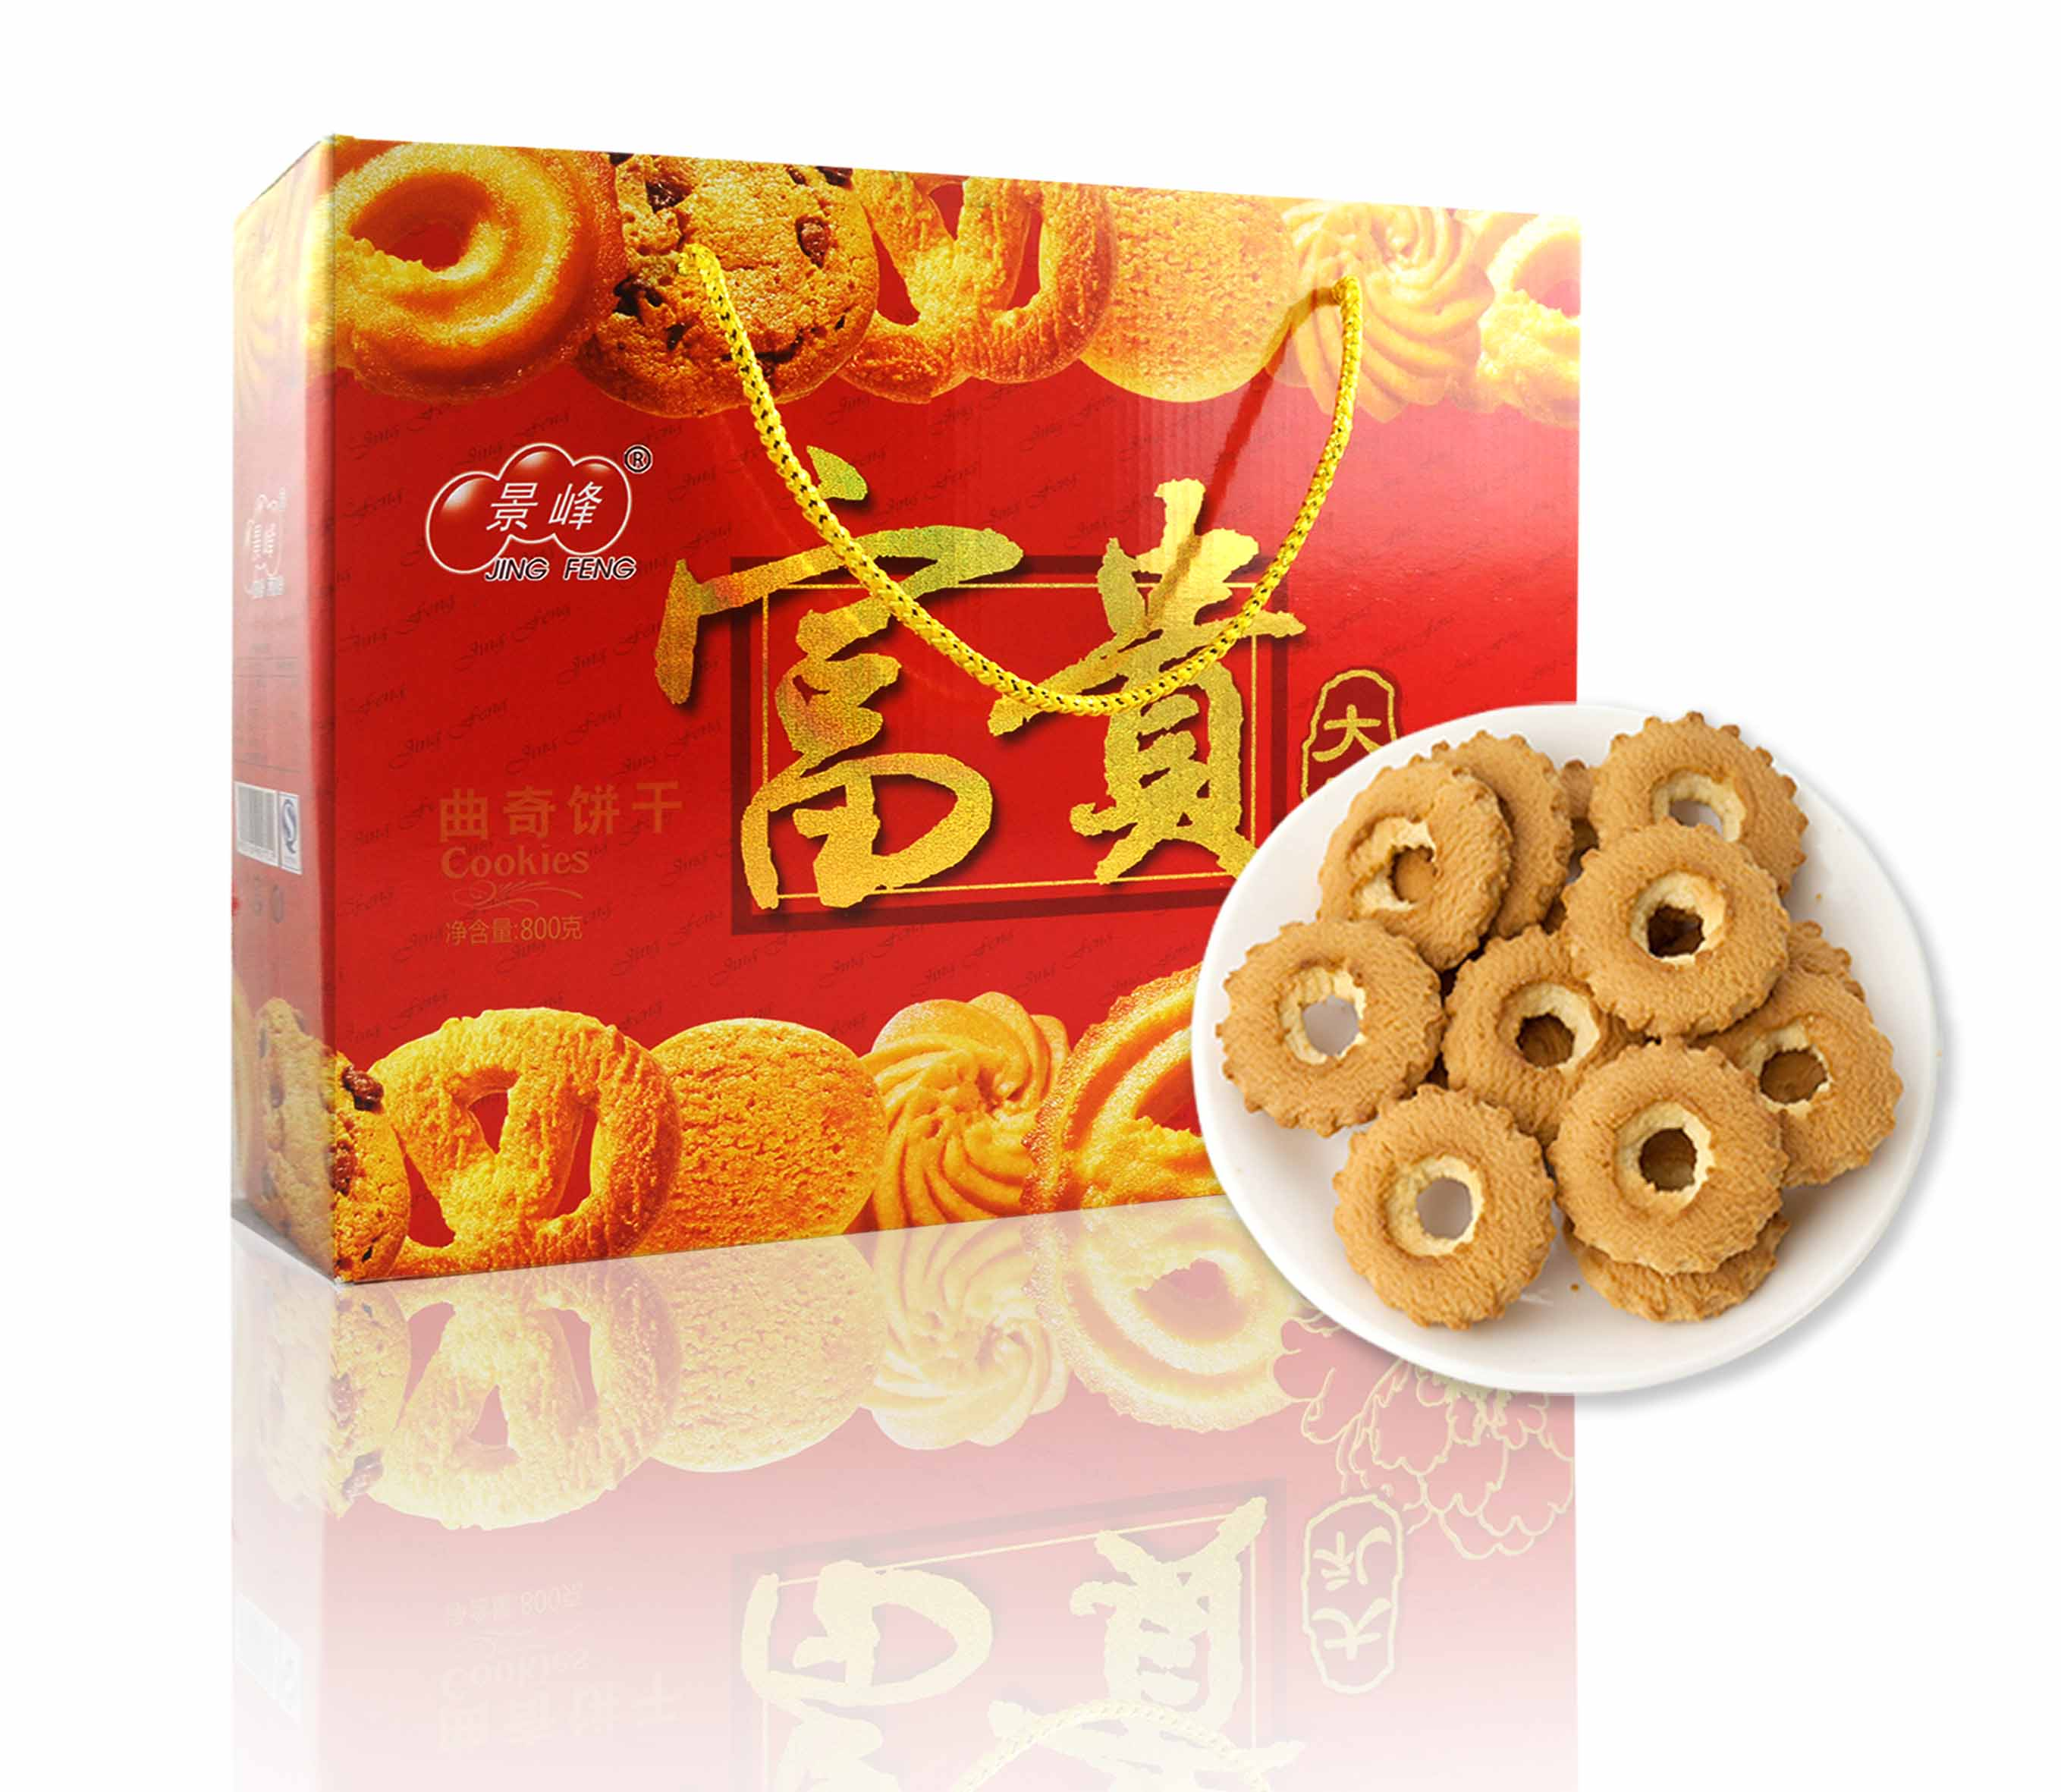 Rich Gift Cookies (800g)